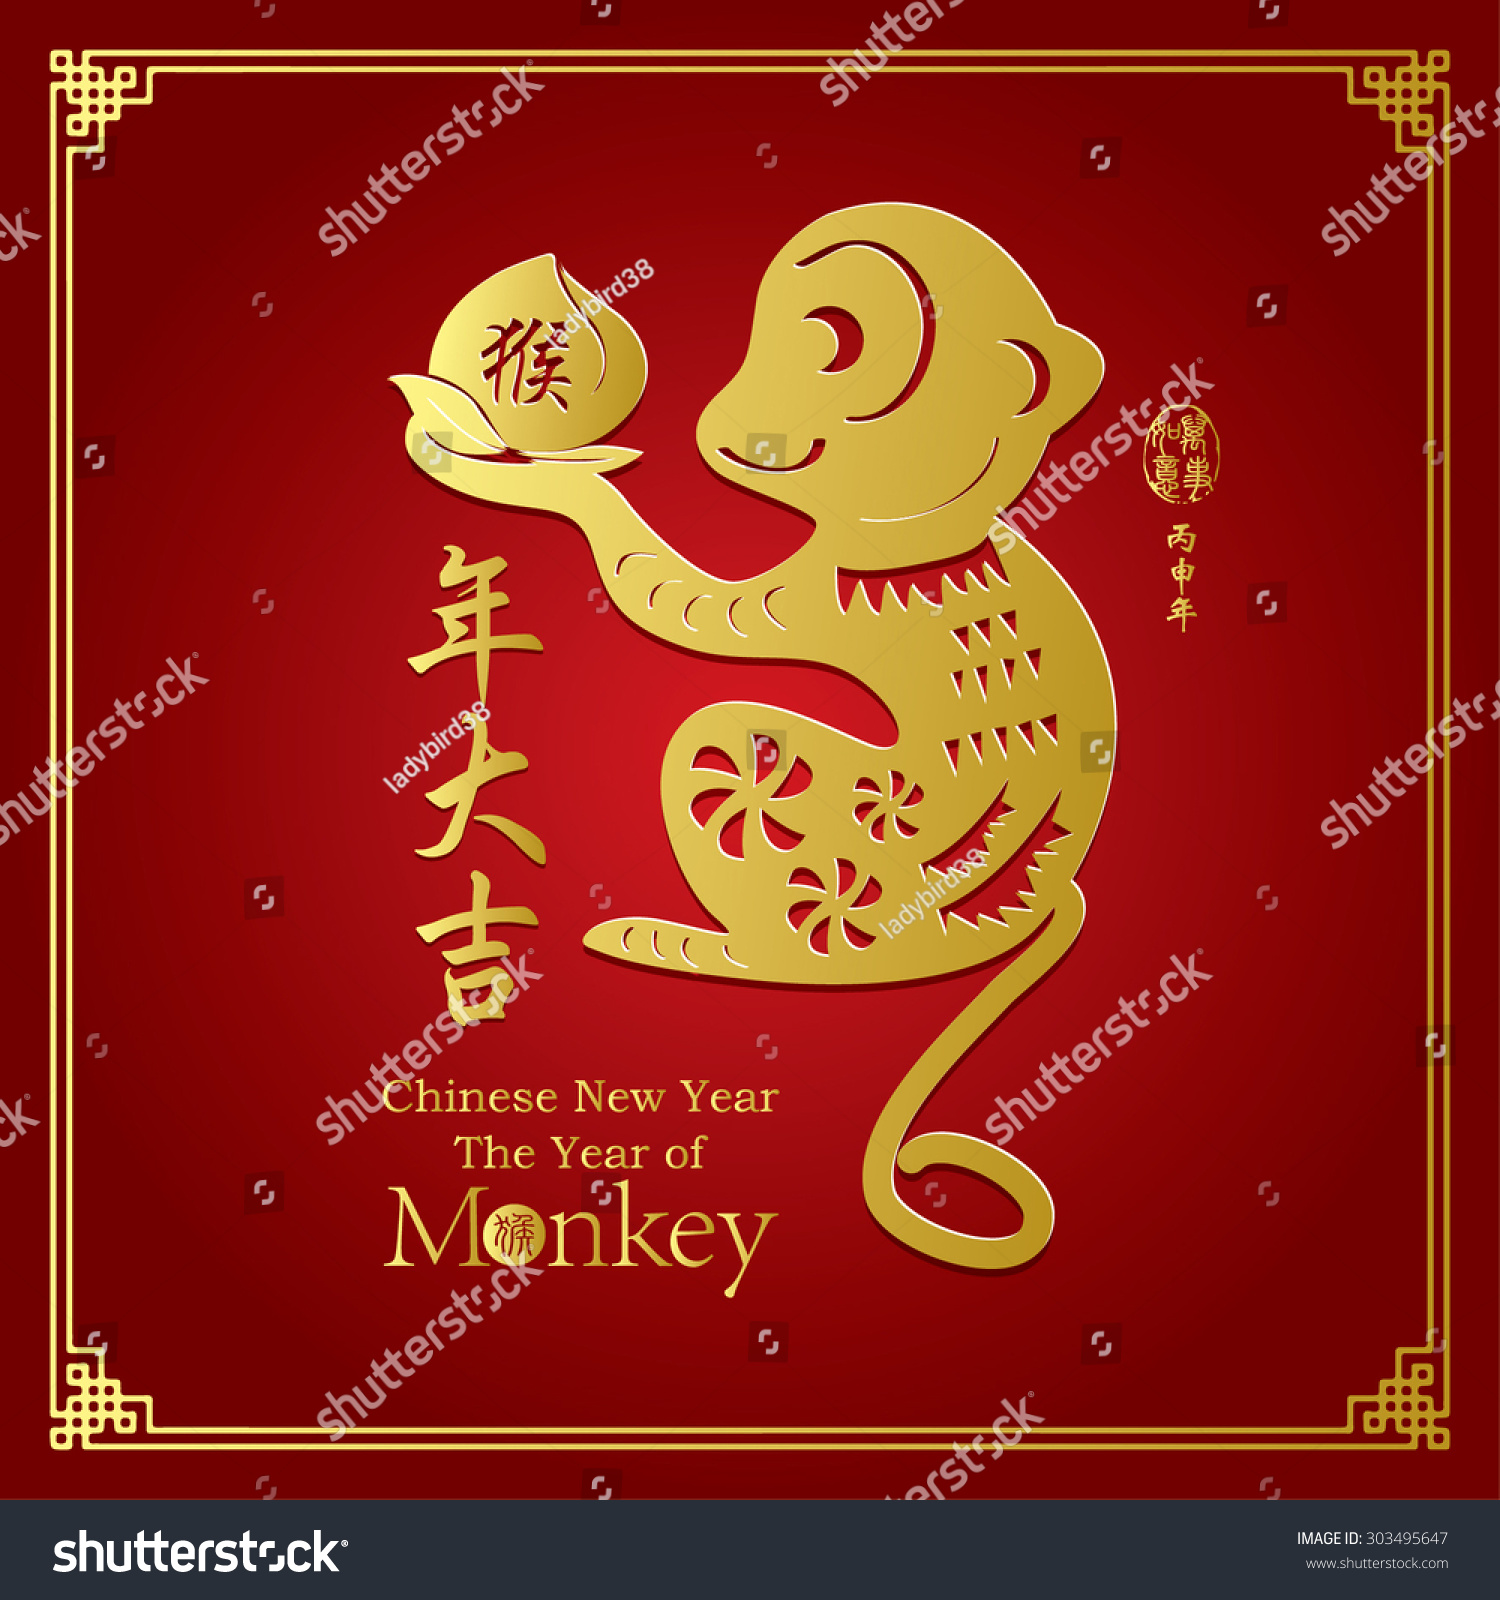 Chinese zodiac monkey Chinese paper cut arts Gold stamps which on the attached image Translation Everything is going very smoothly Chinese wording translation 2016 year of the monkey